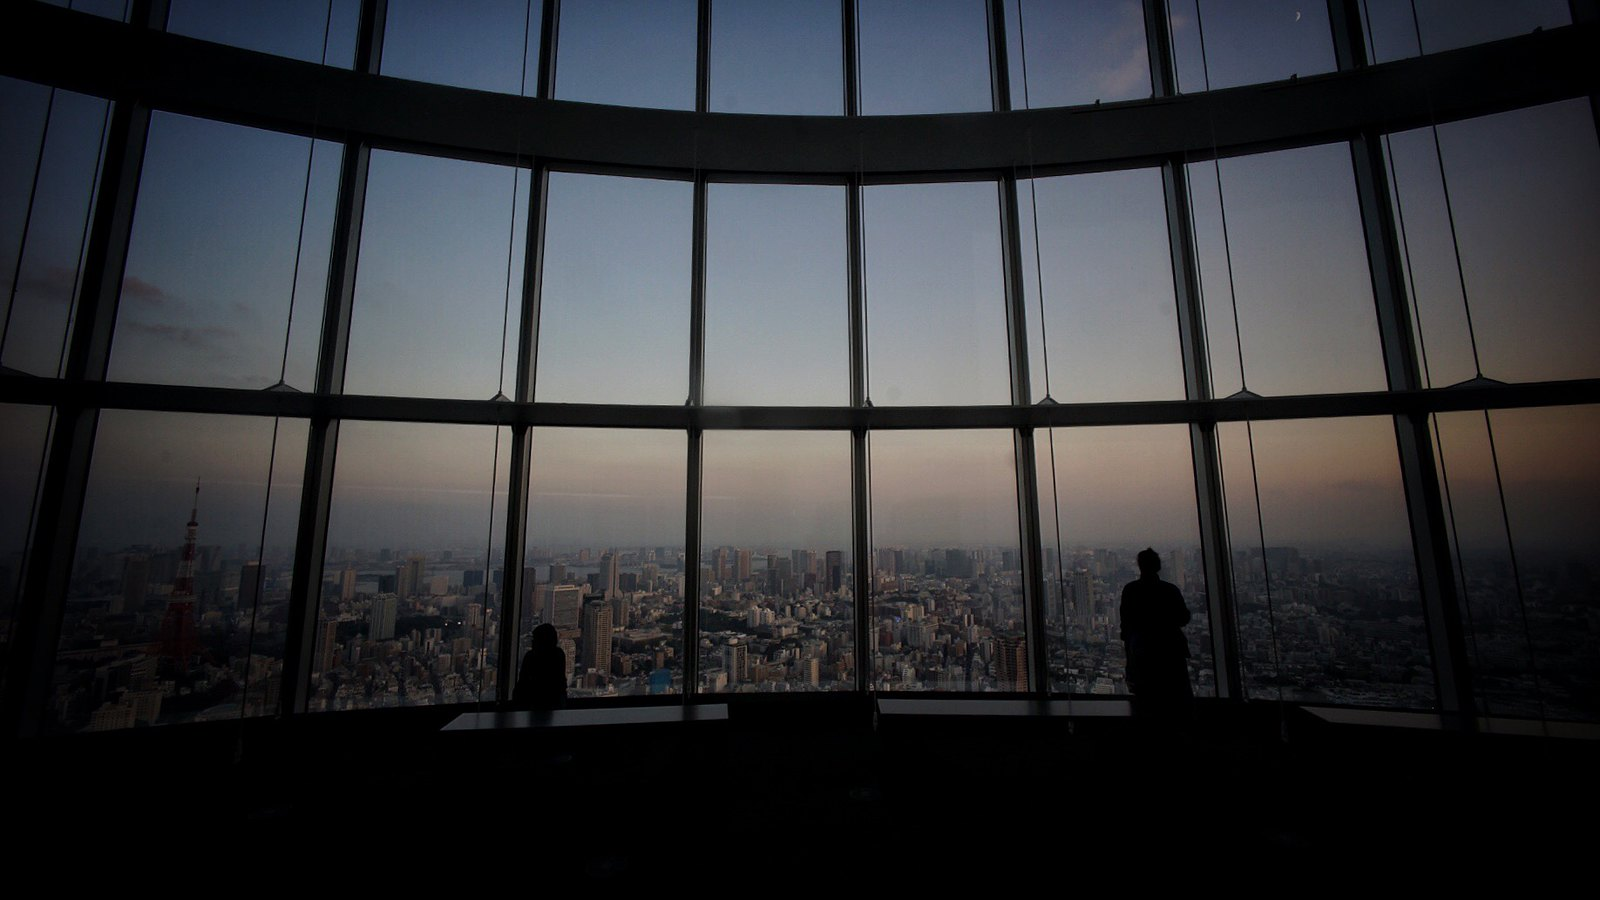 Sunset at Roppongi Hills